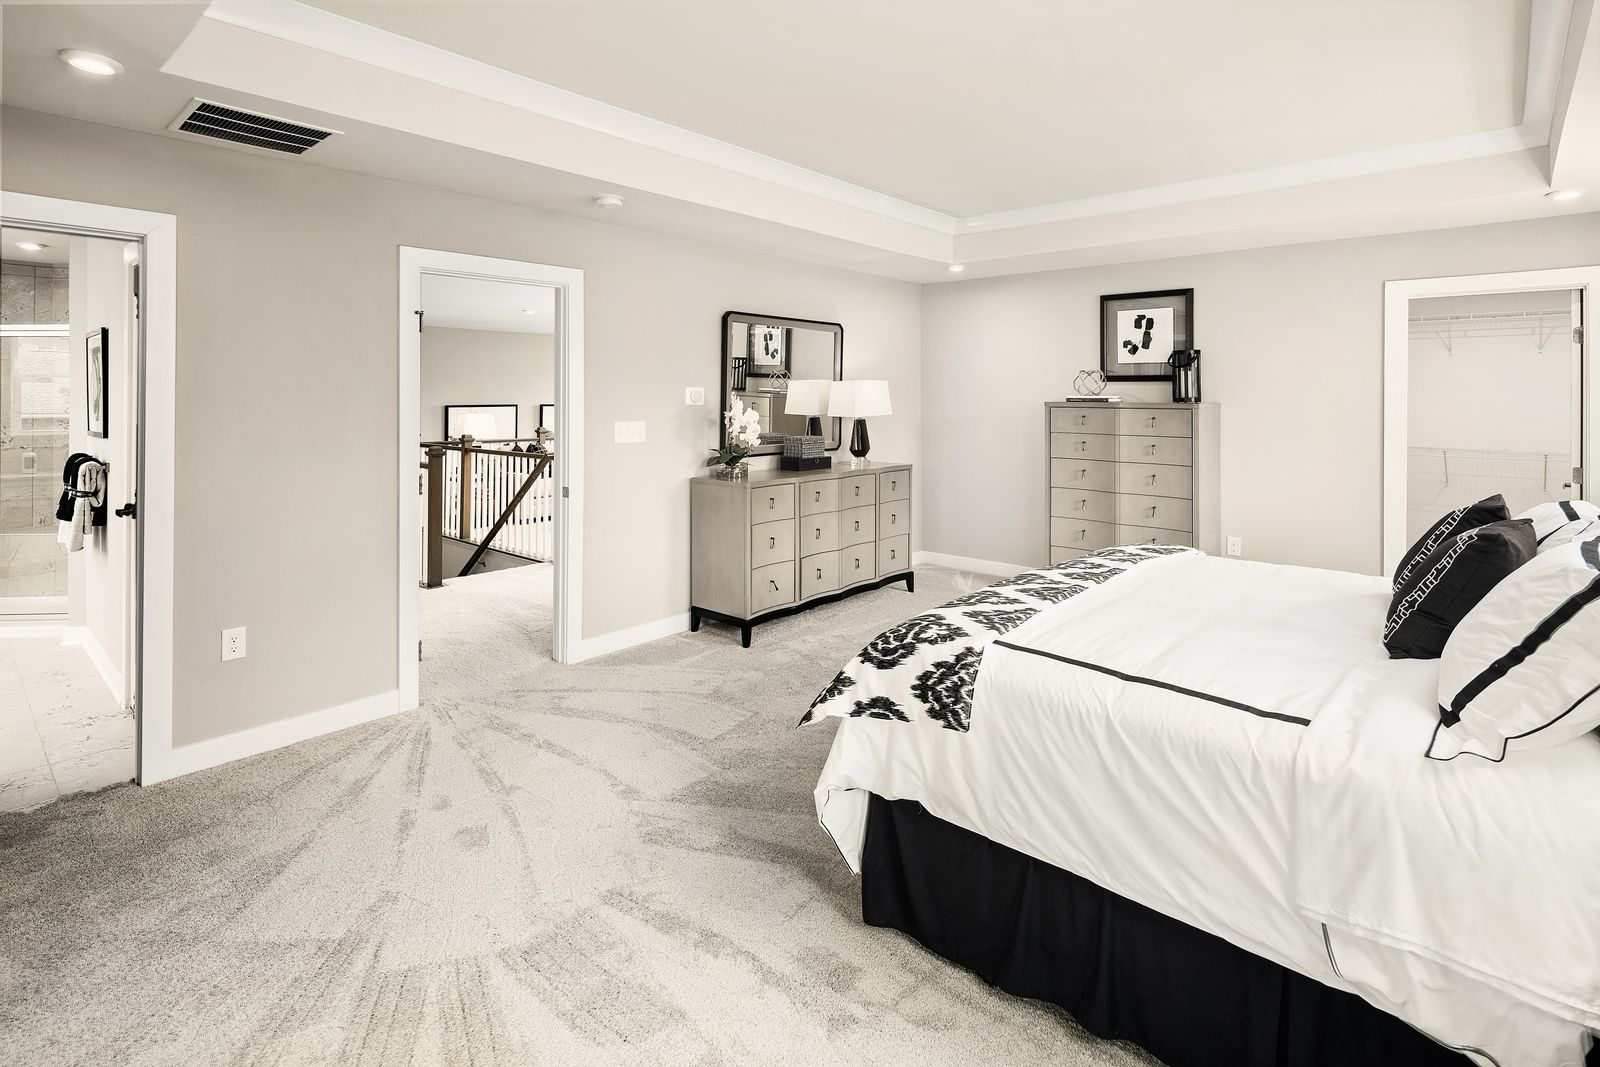 Bedroom featured in the Corsica By Ryan Homes in Harrisburg, PA